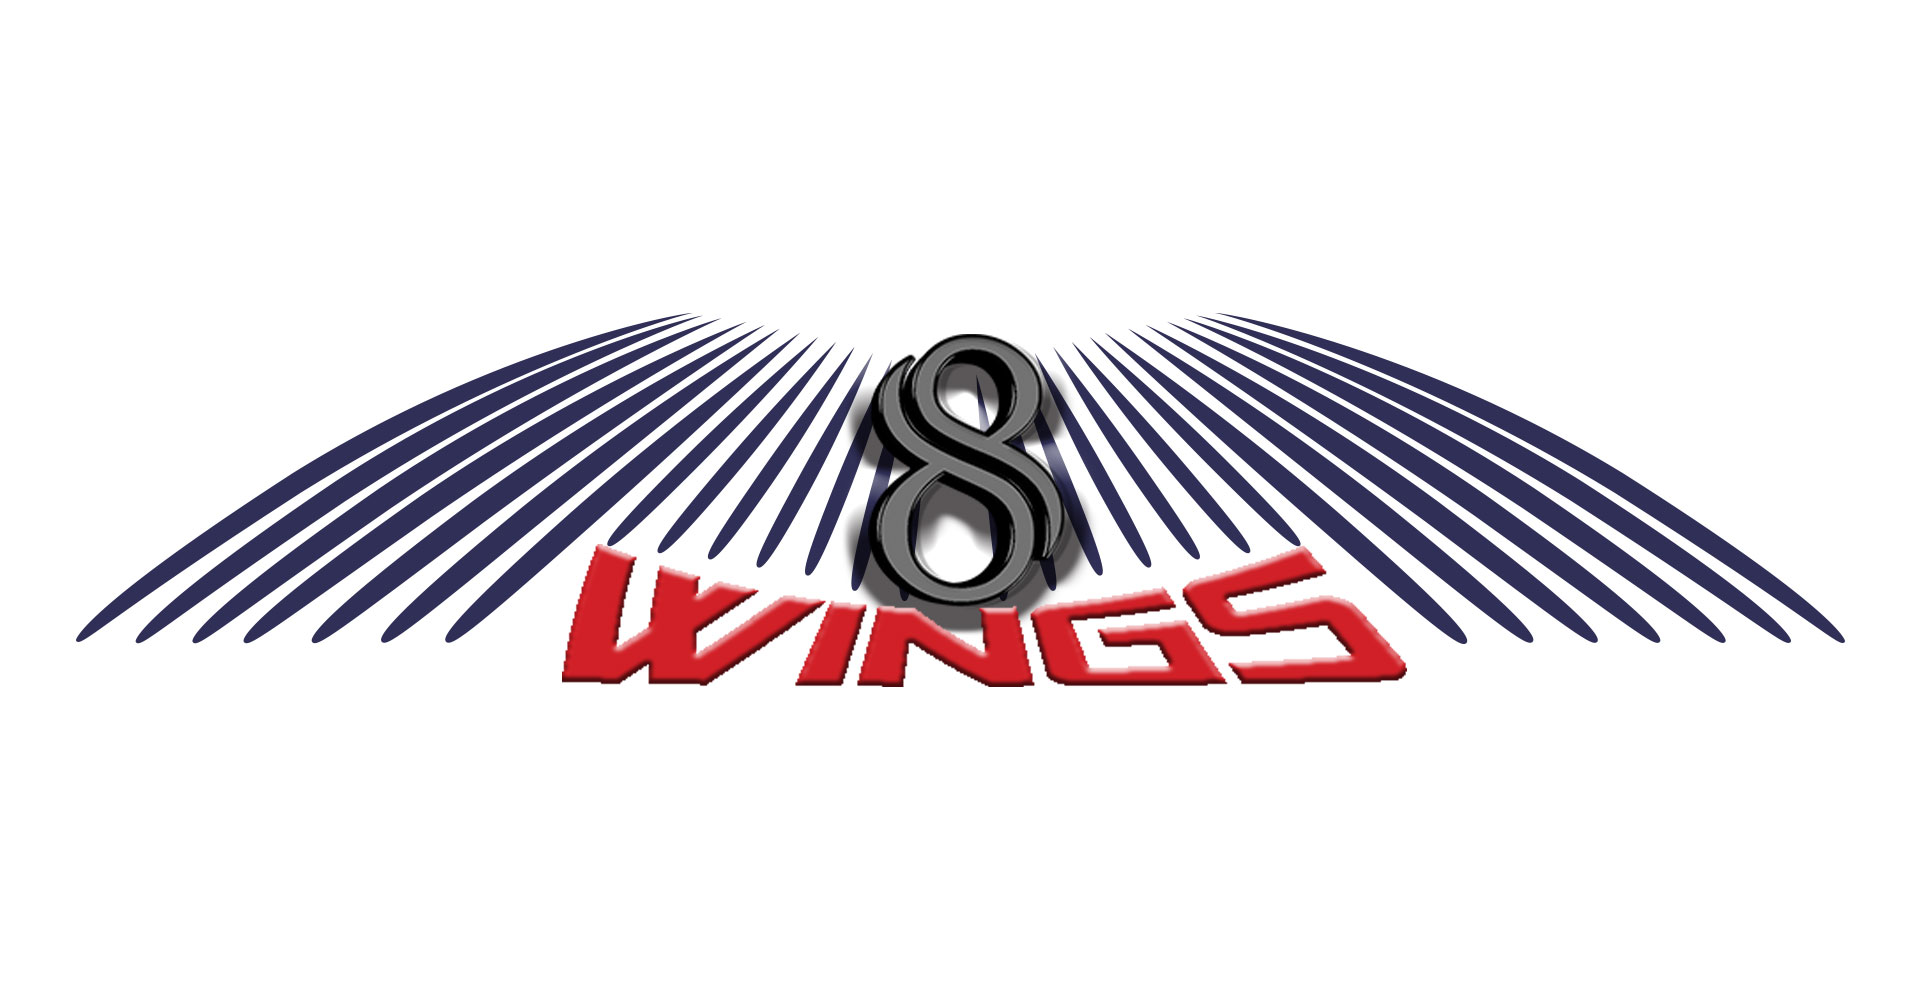 8Wings Logodesign